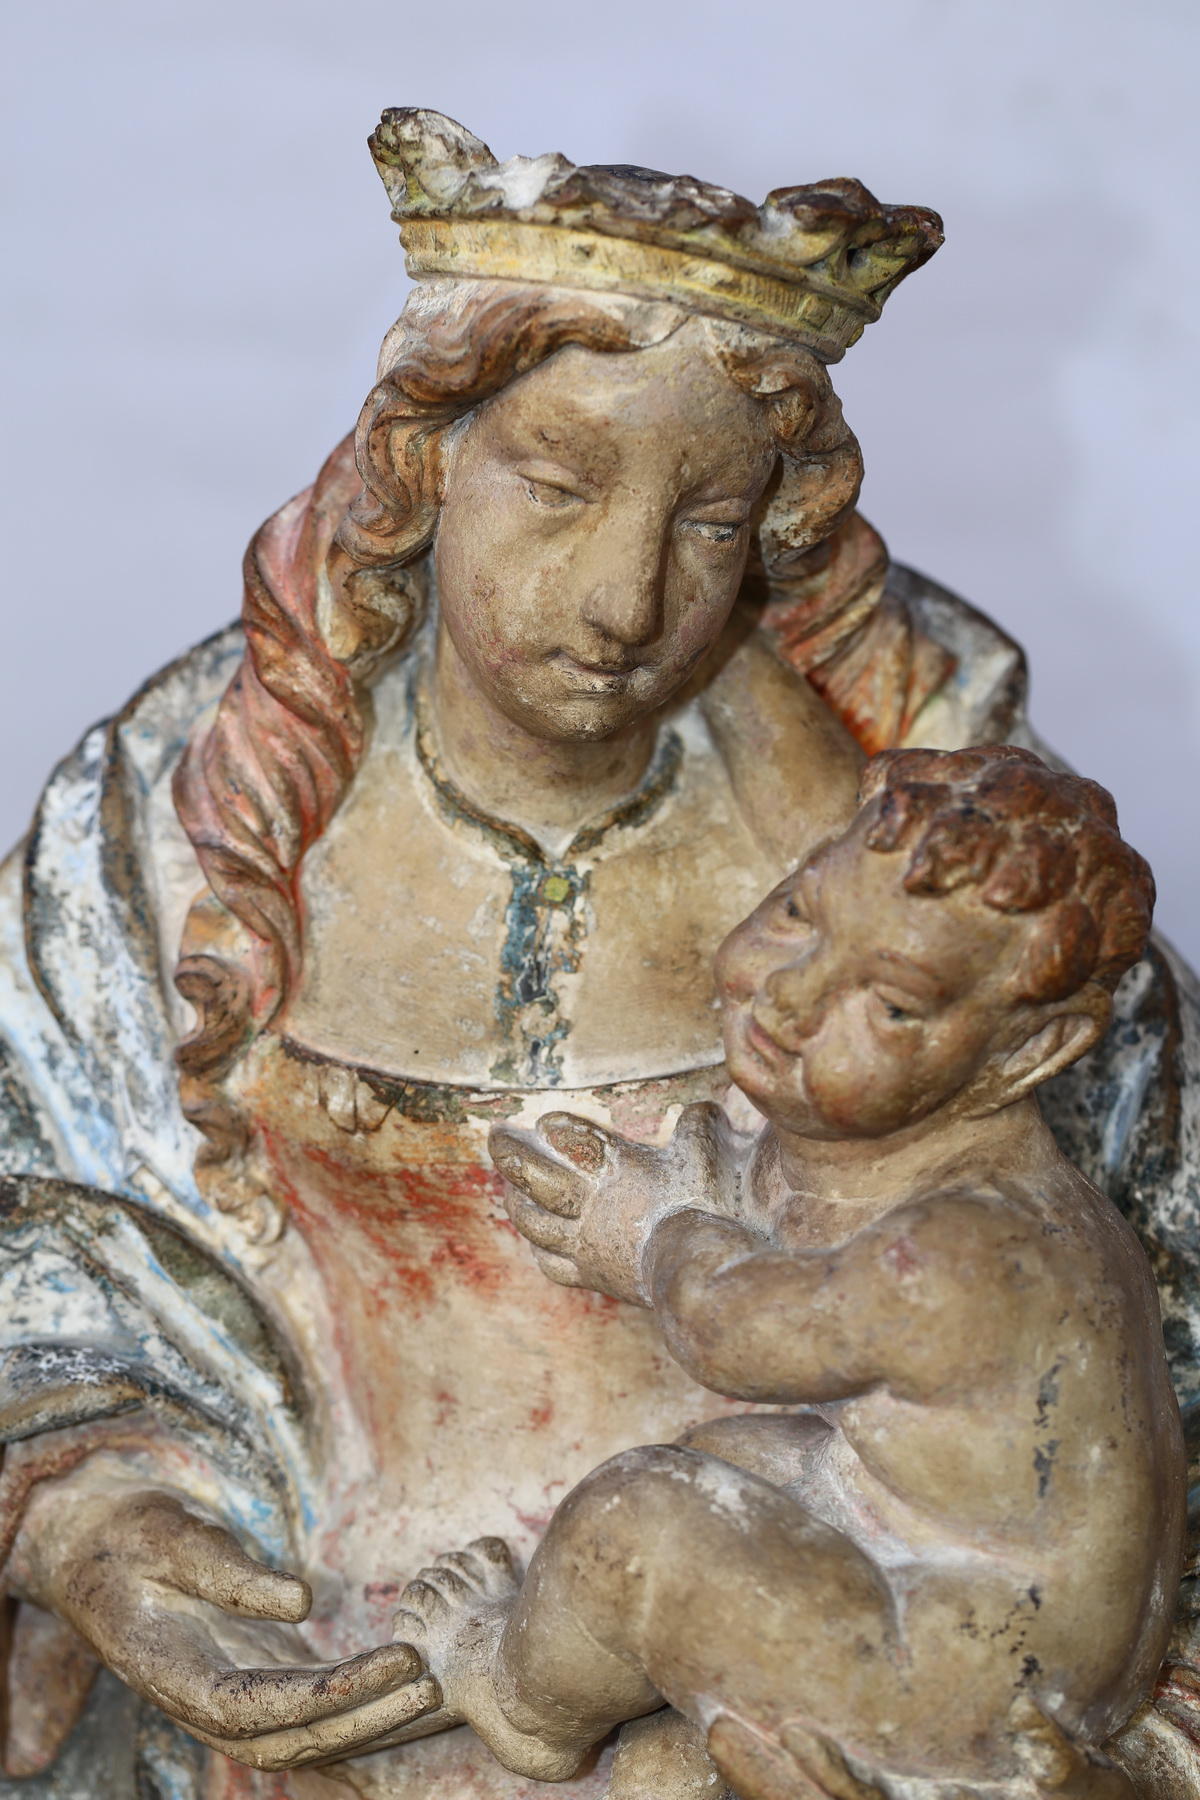 Madonna carved stone 16th